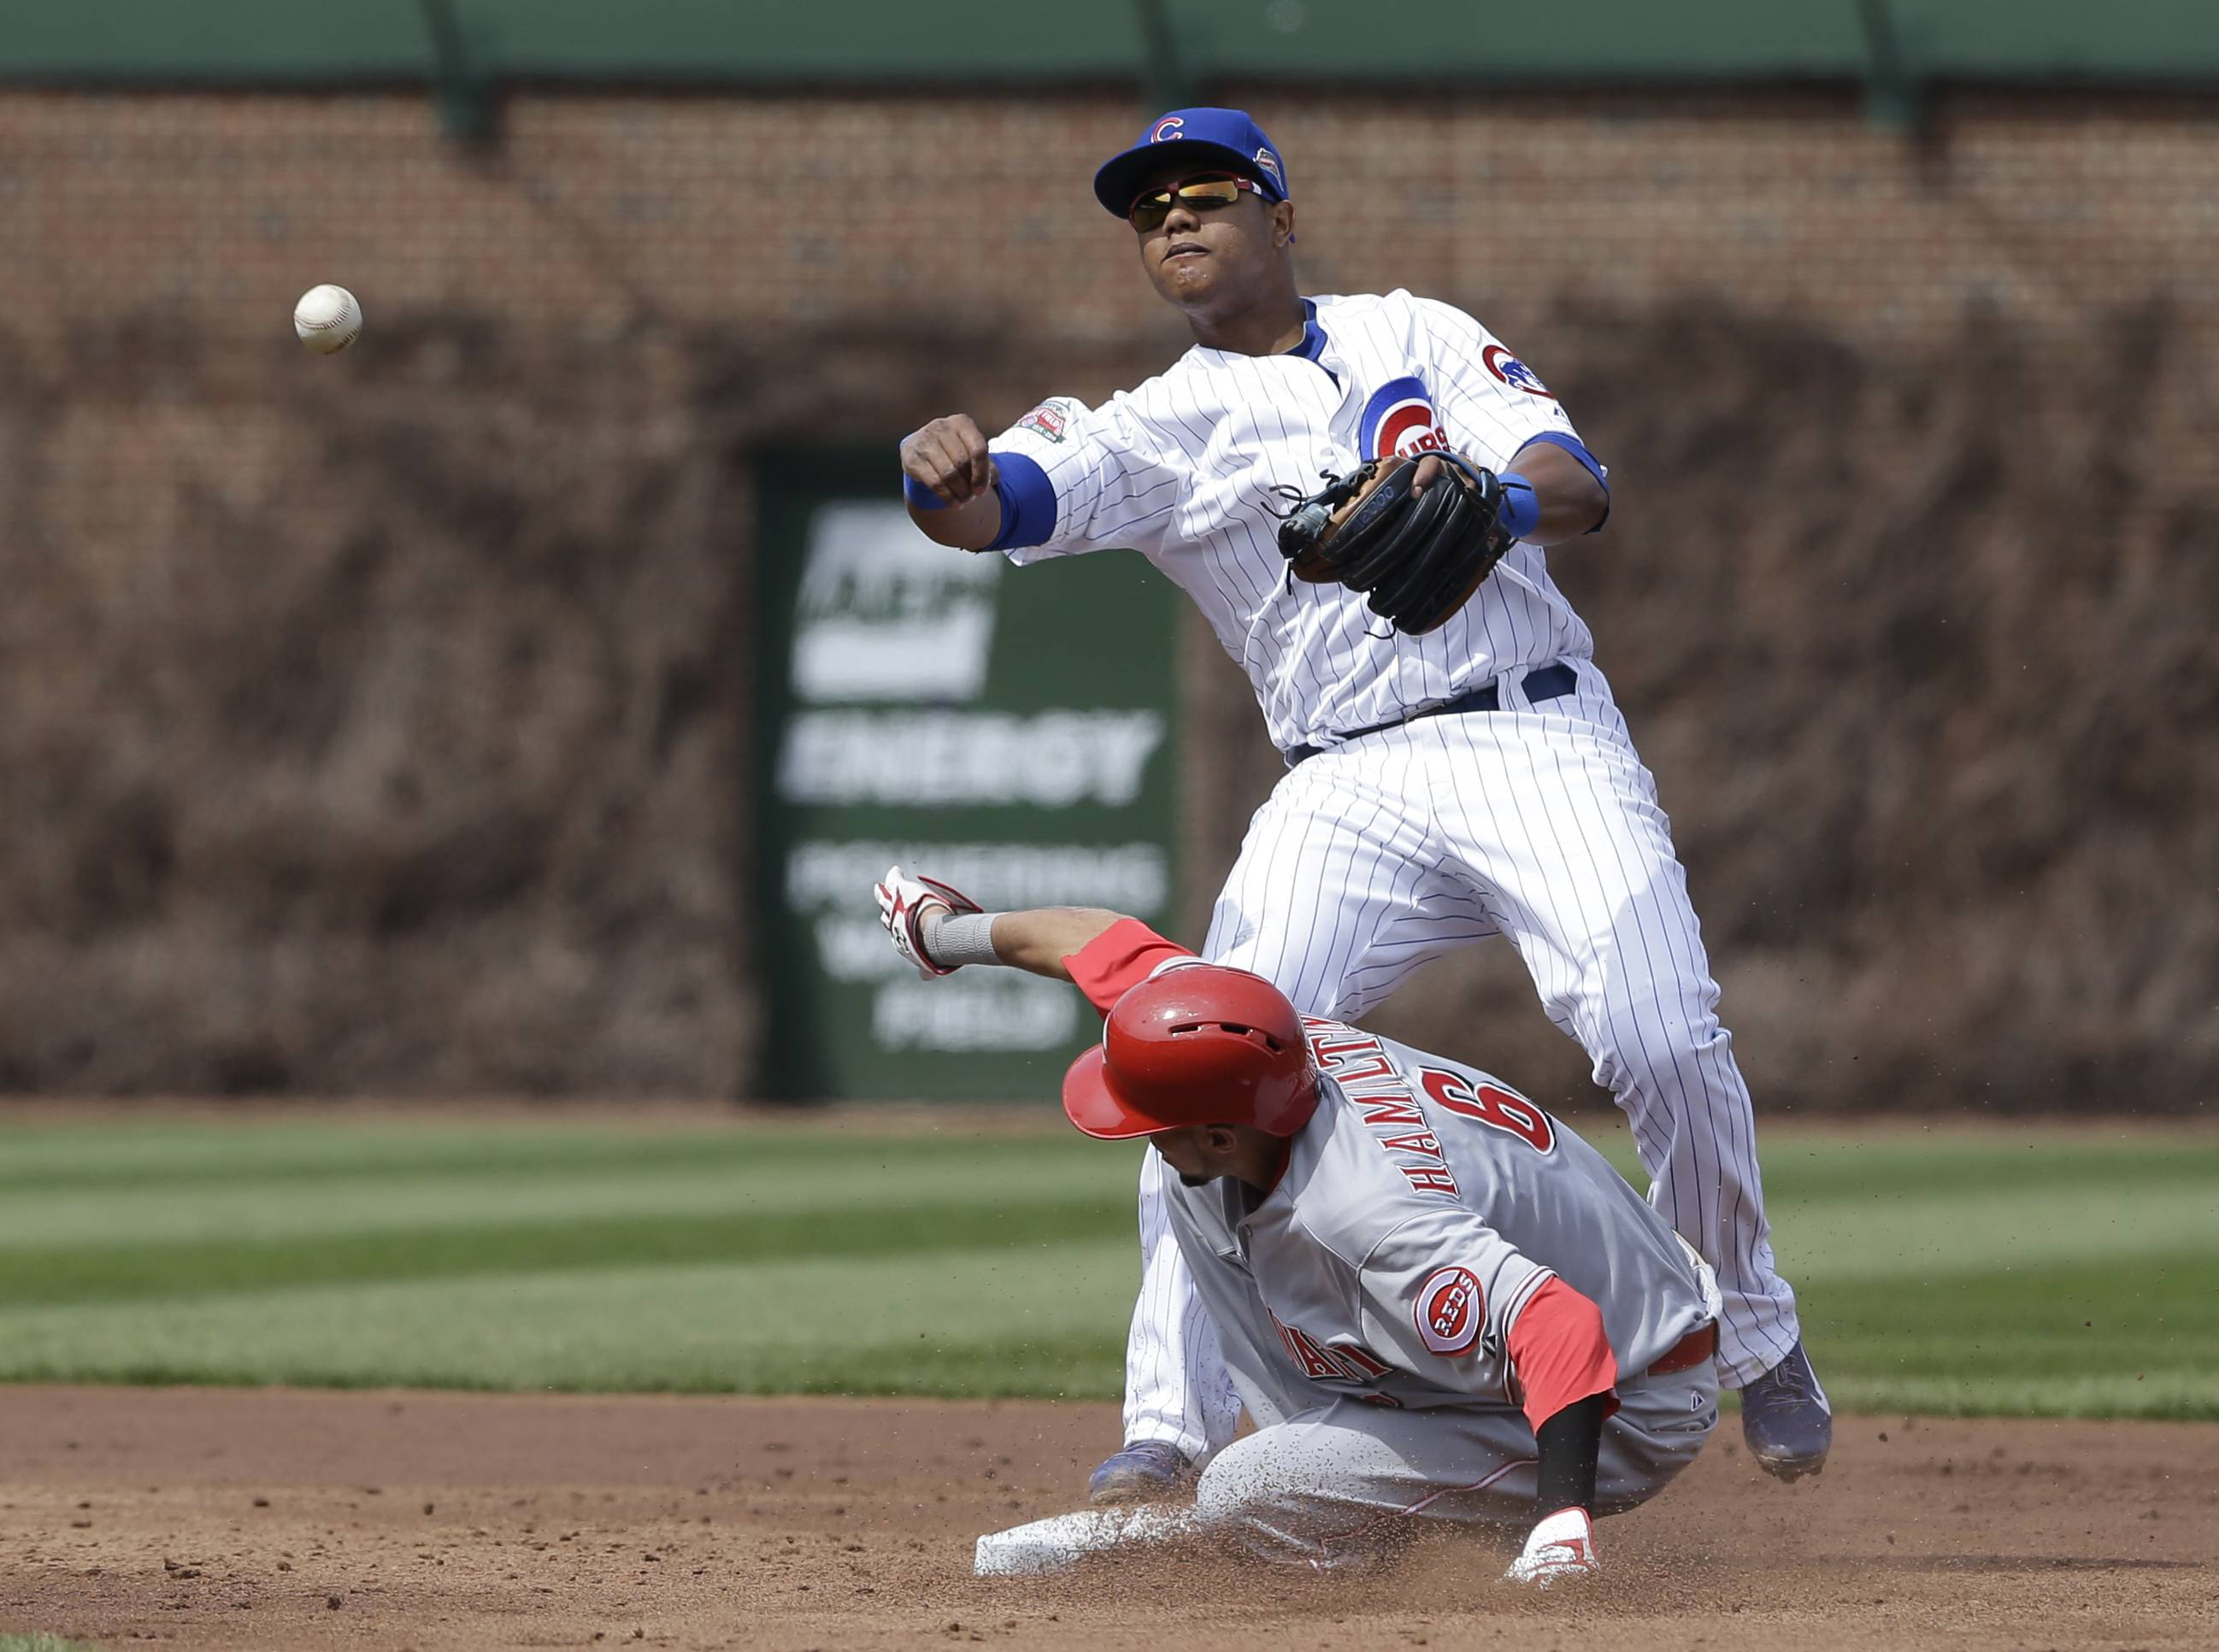 Cubs shortstop Starlin Castro, top, throws out Cincinnati Reds' Joey Votto at first base after forcing out Billy Hamilton during the third inning of a baseball game in Chicago, Saturday, April 19, 2014.